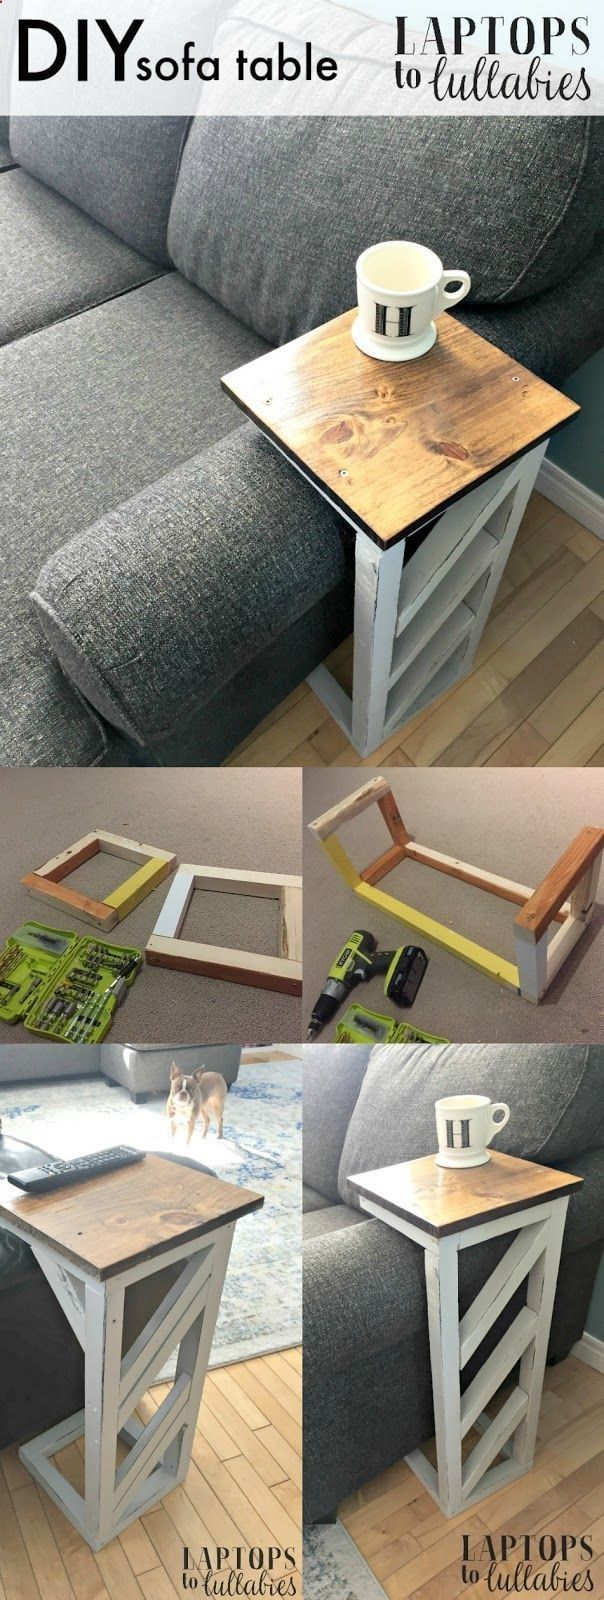 best diy images on pinterest decorating ideas good ideas and